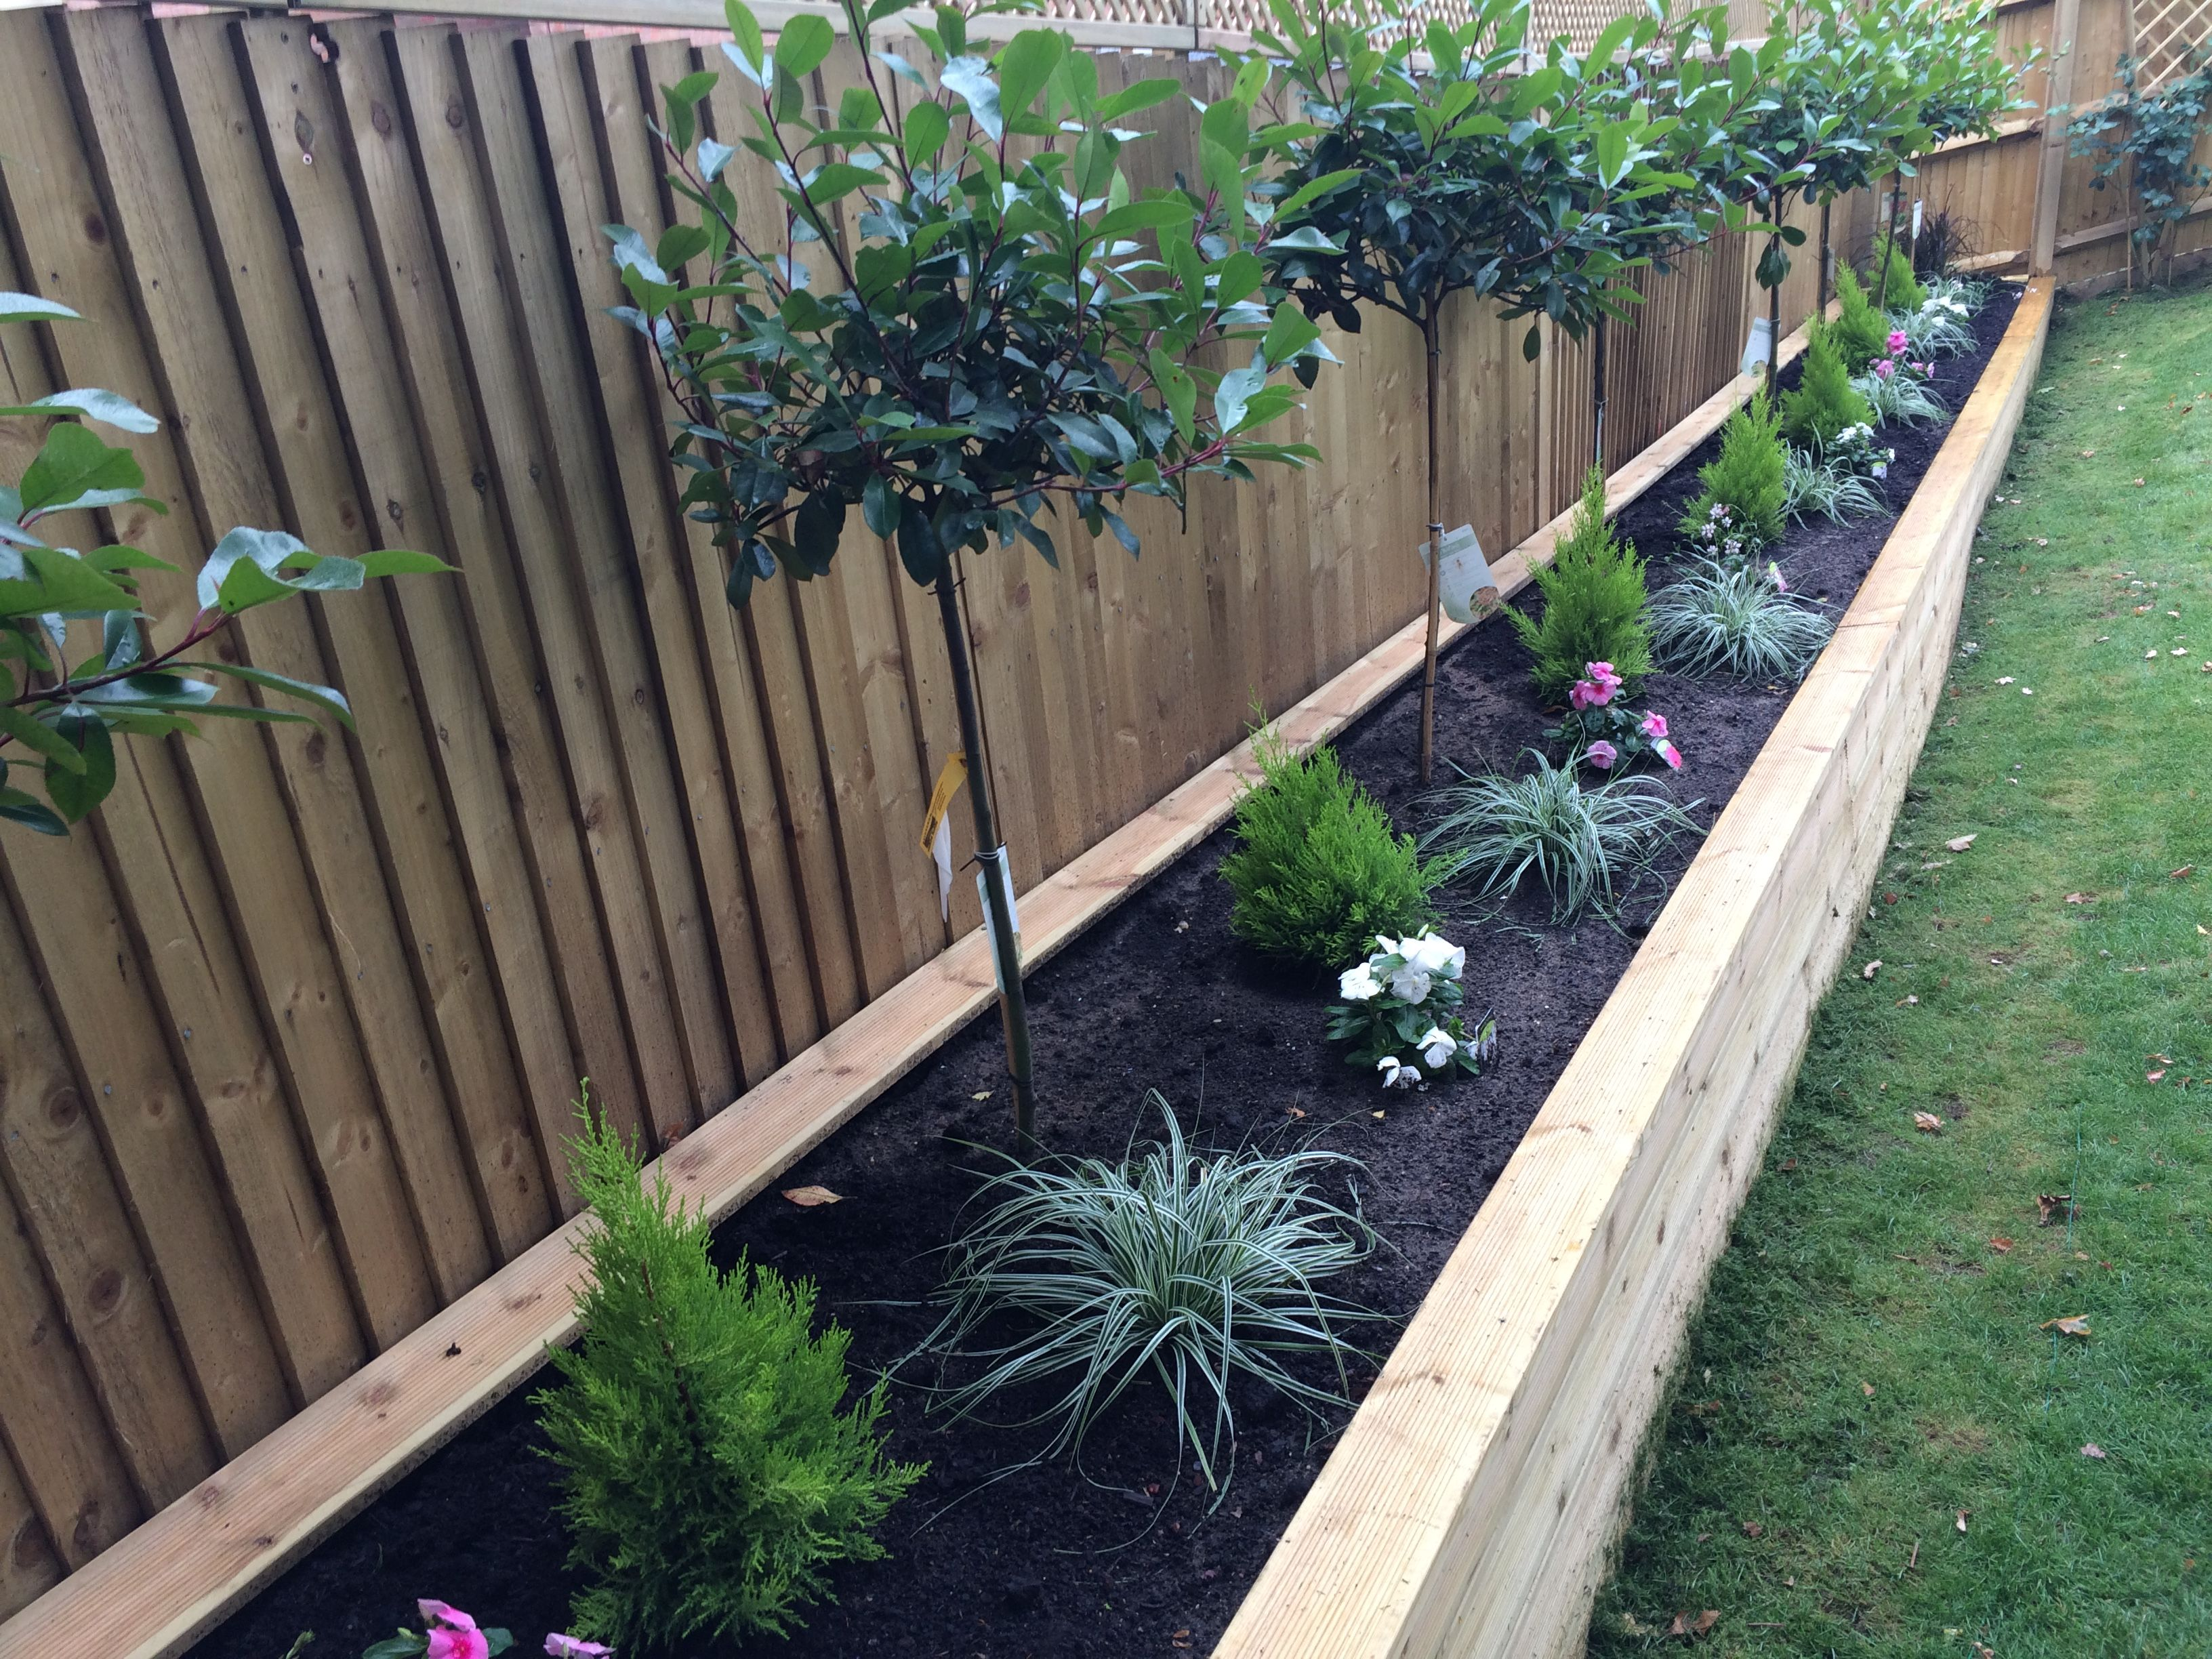 18 diy garden fence ideas to keep your plants red robin for Garden bed fence ideas